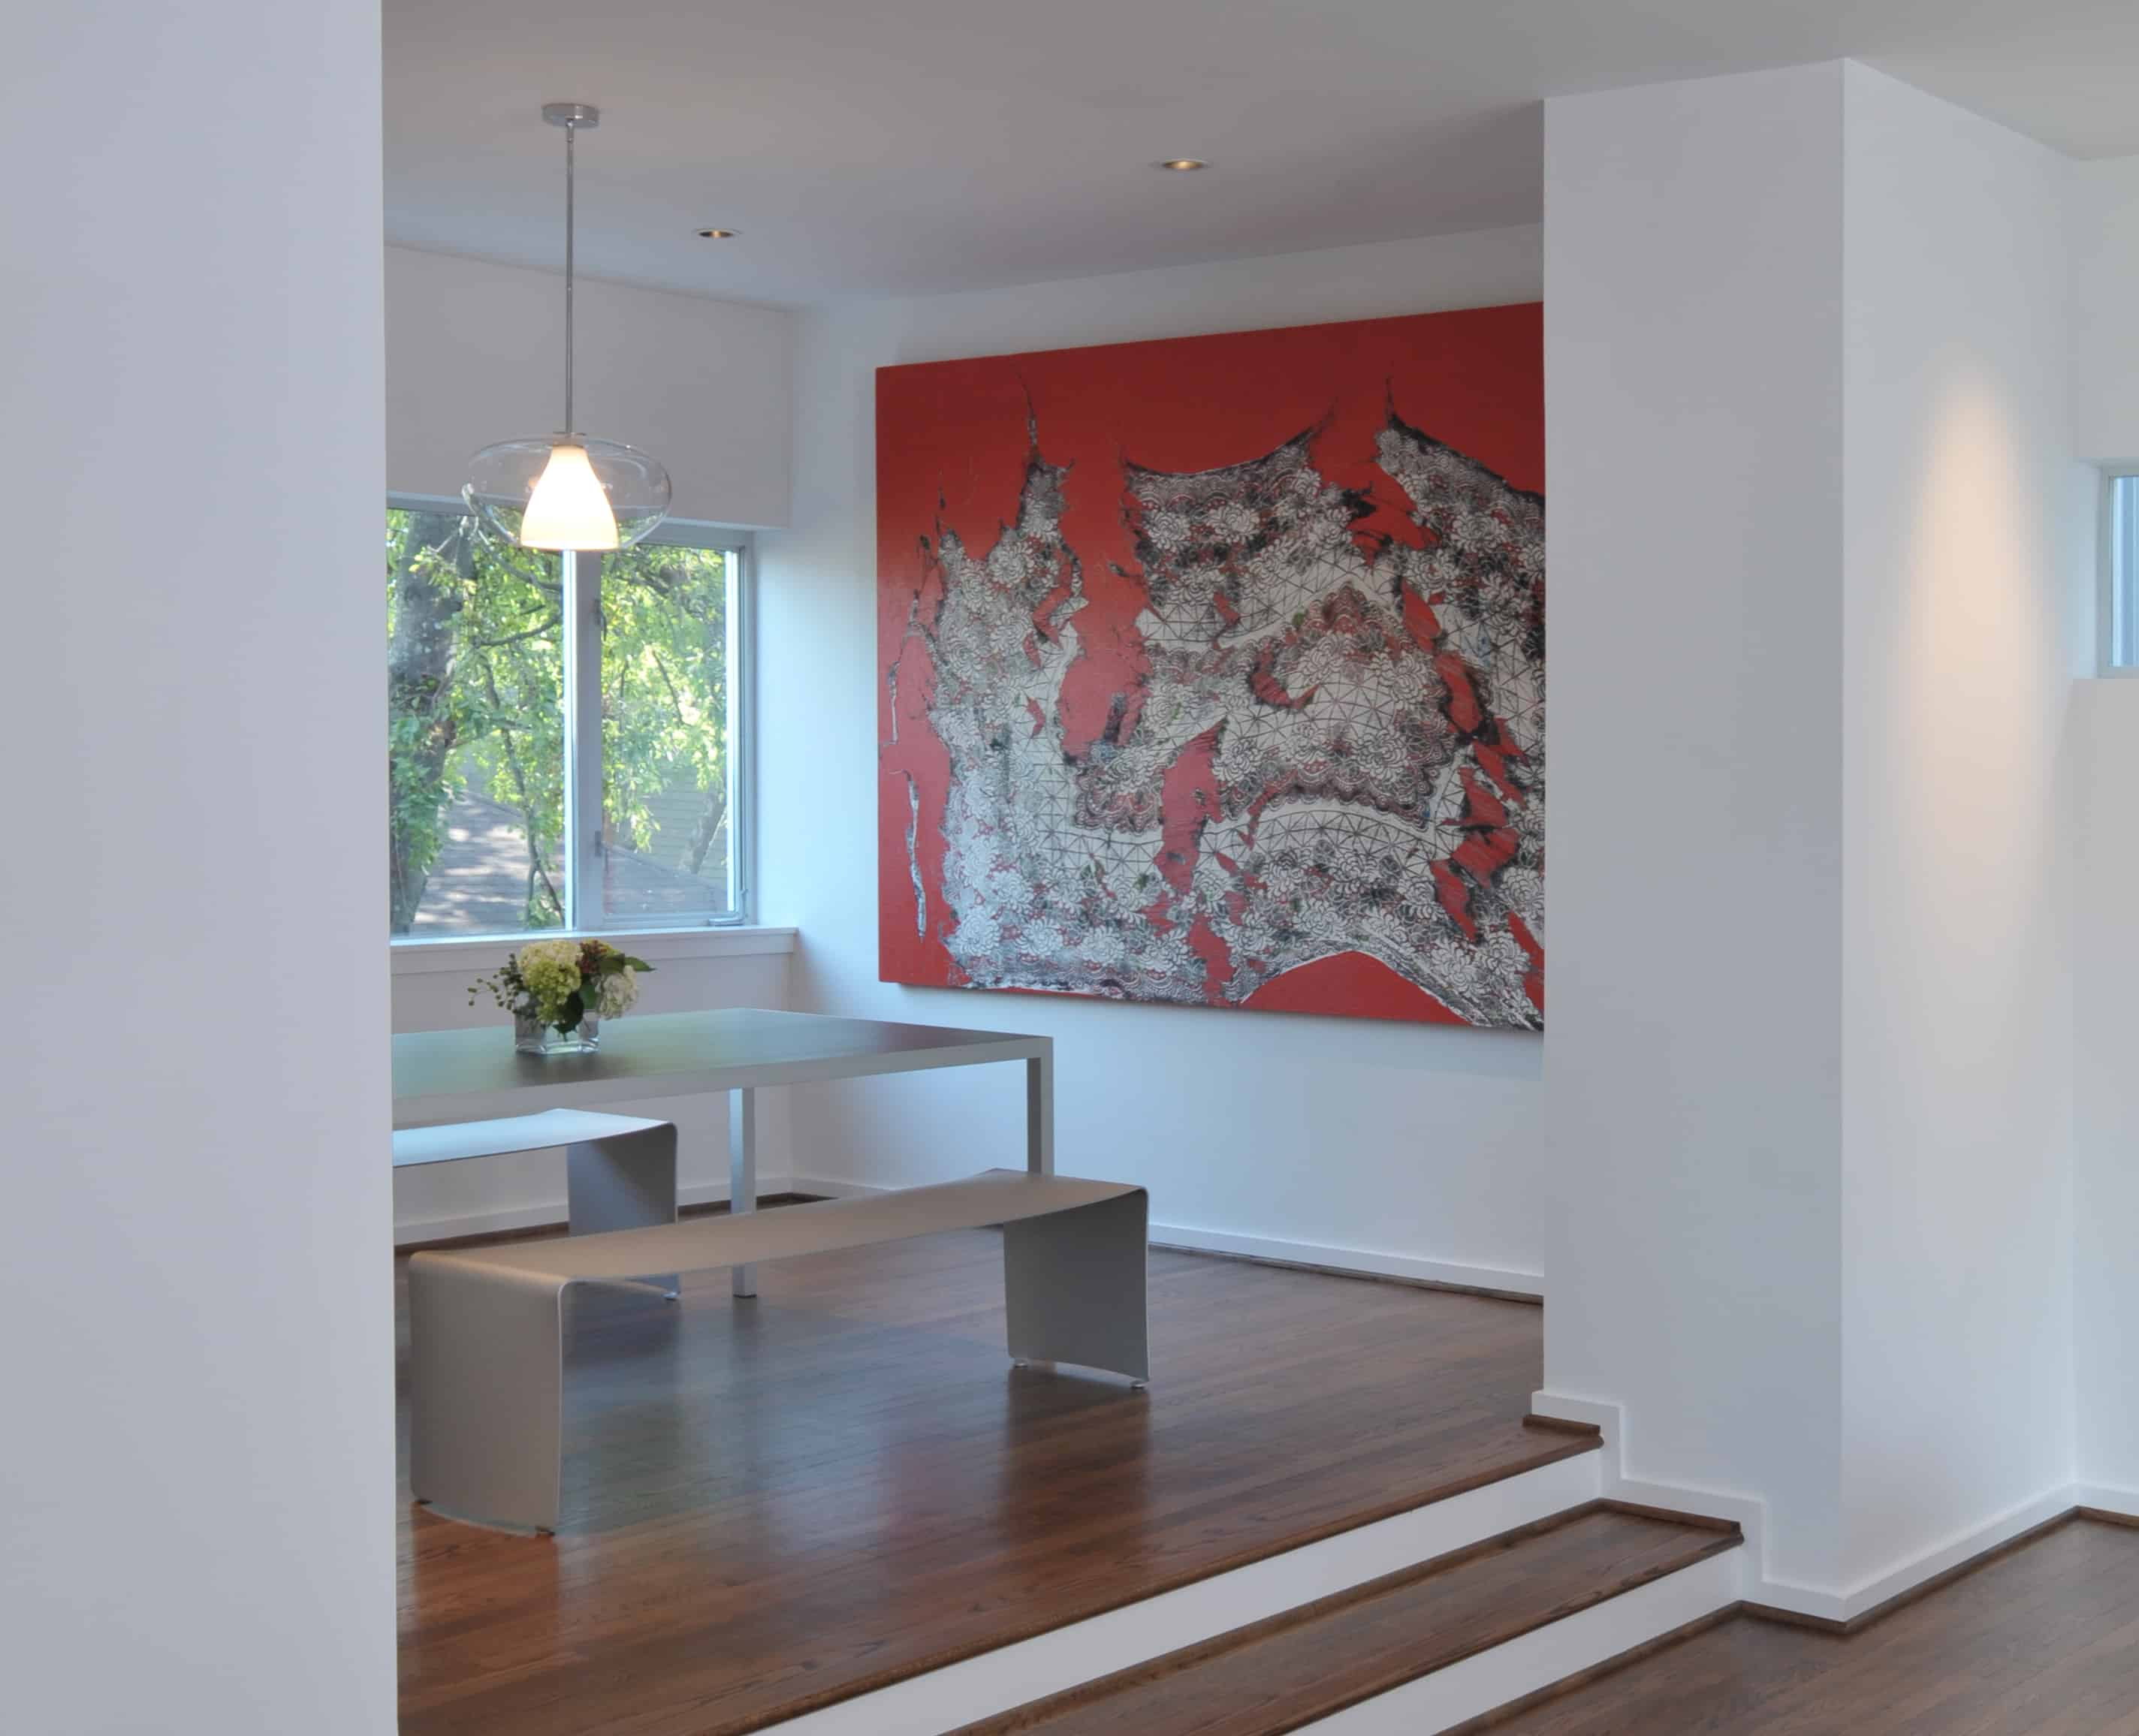 Southmore terrace sustainable houston modern home dining room.